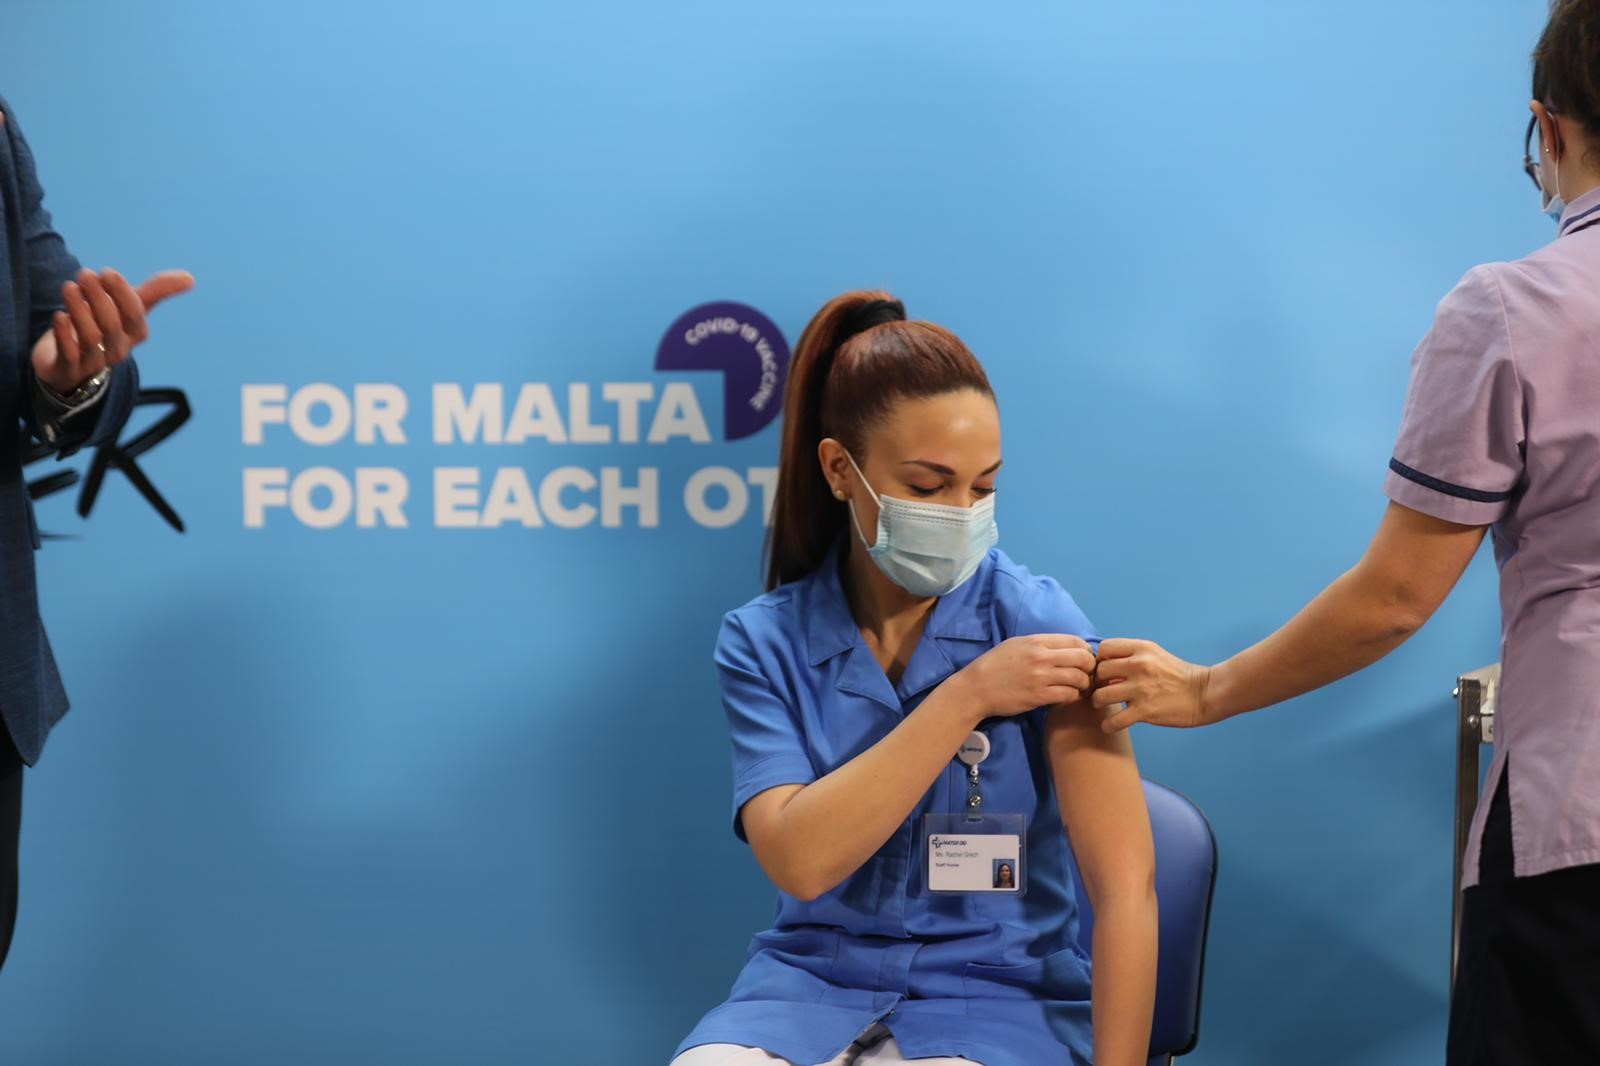 Eurobarometer shows only 4% would refuse Covid vaccine in Malta - Newsbook